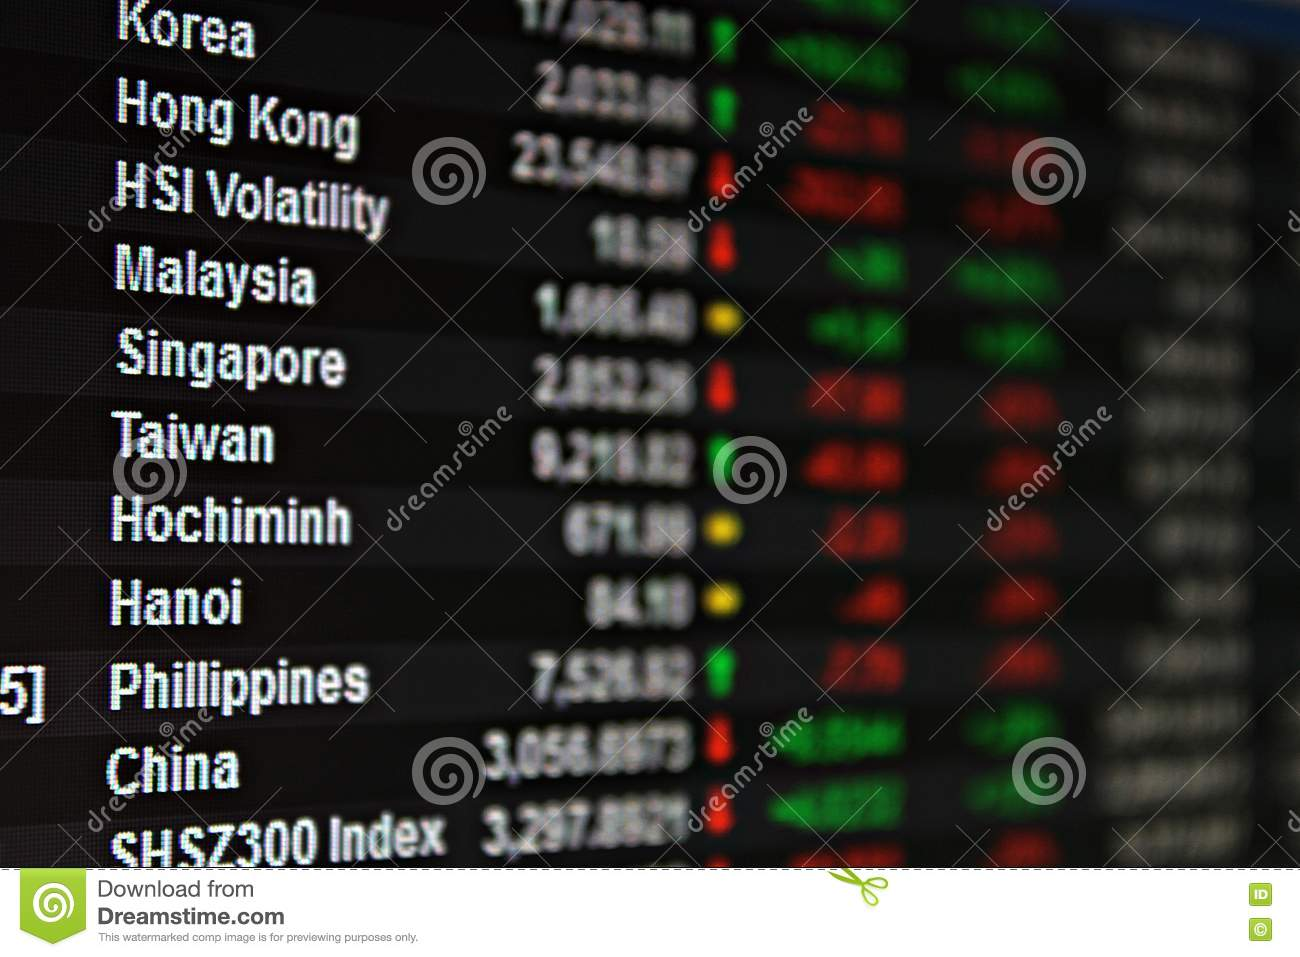 Asian pacific stock markets awesome!